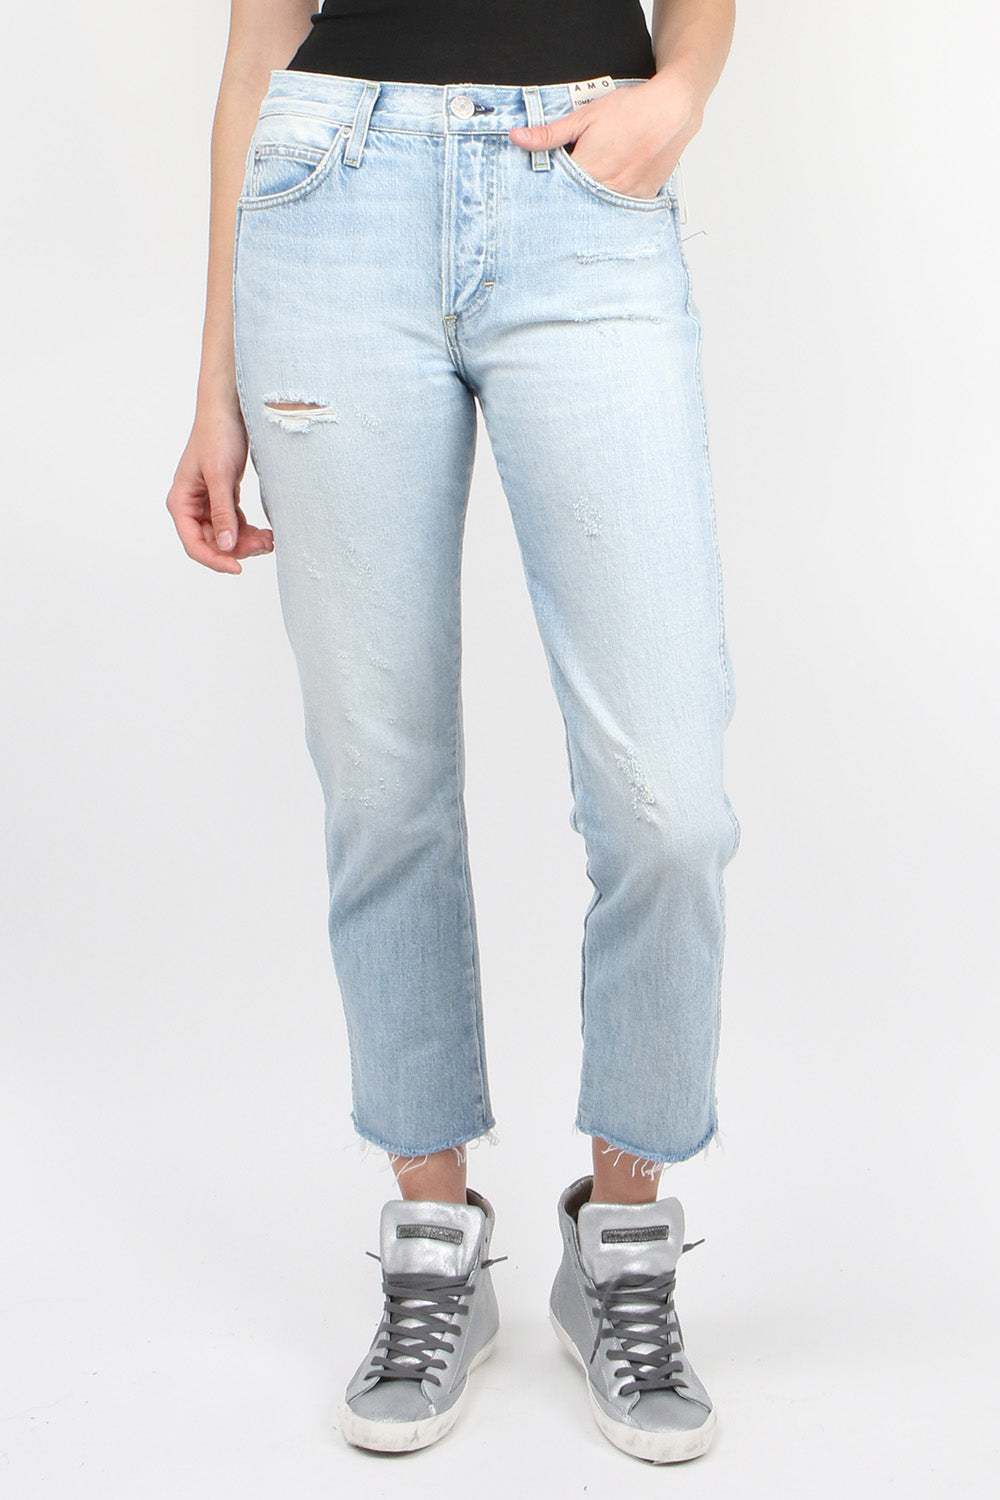 AMO Tomboy Crop Jean in Moonwalk